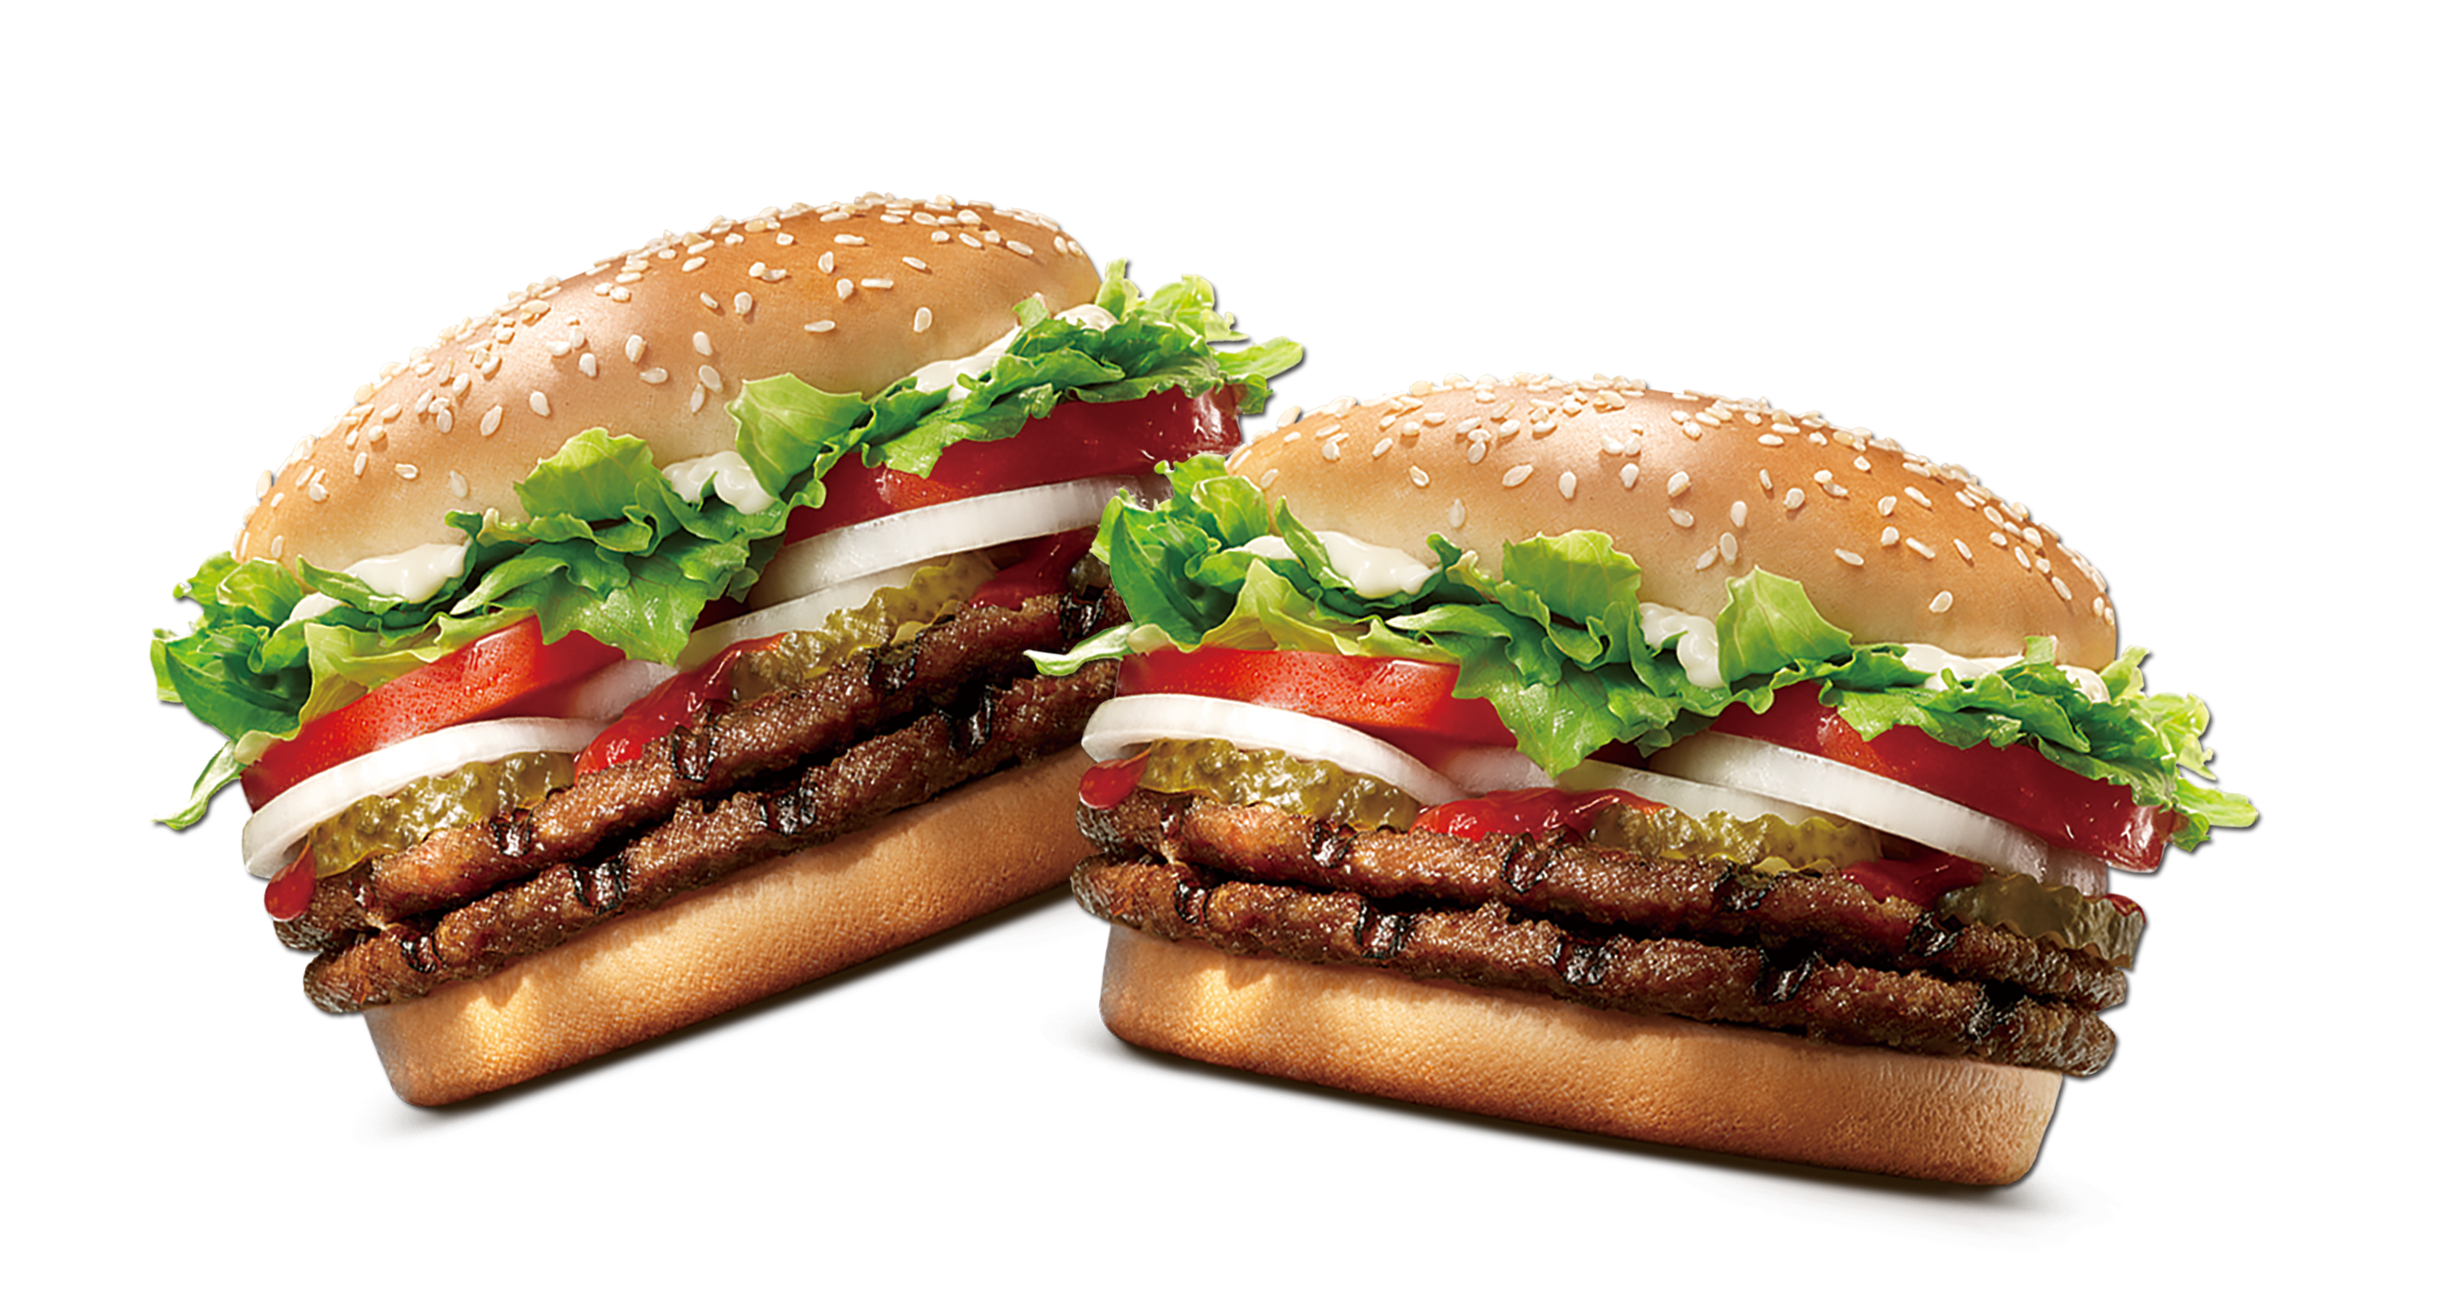 image of 2 fresh burgers